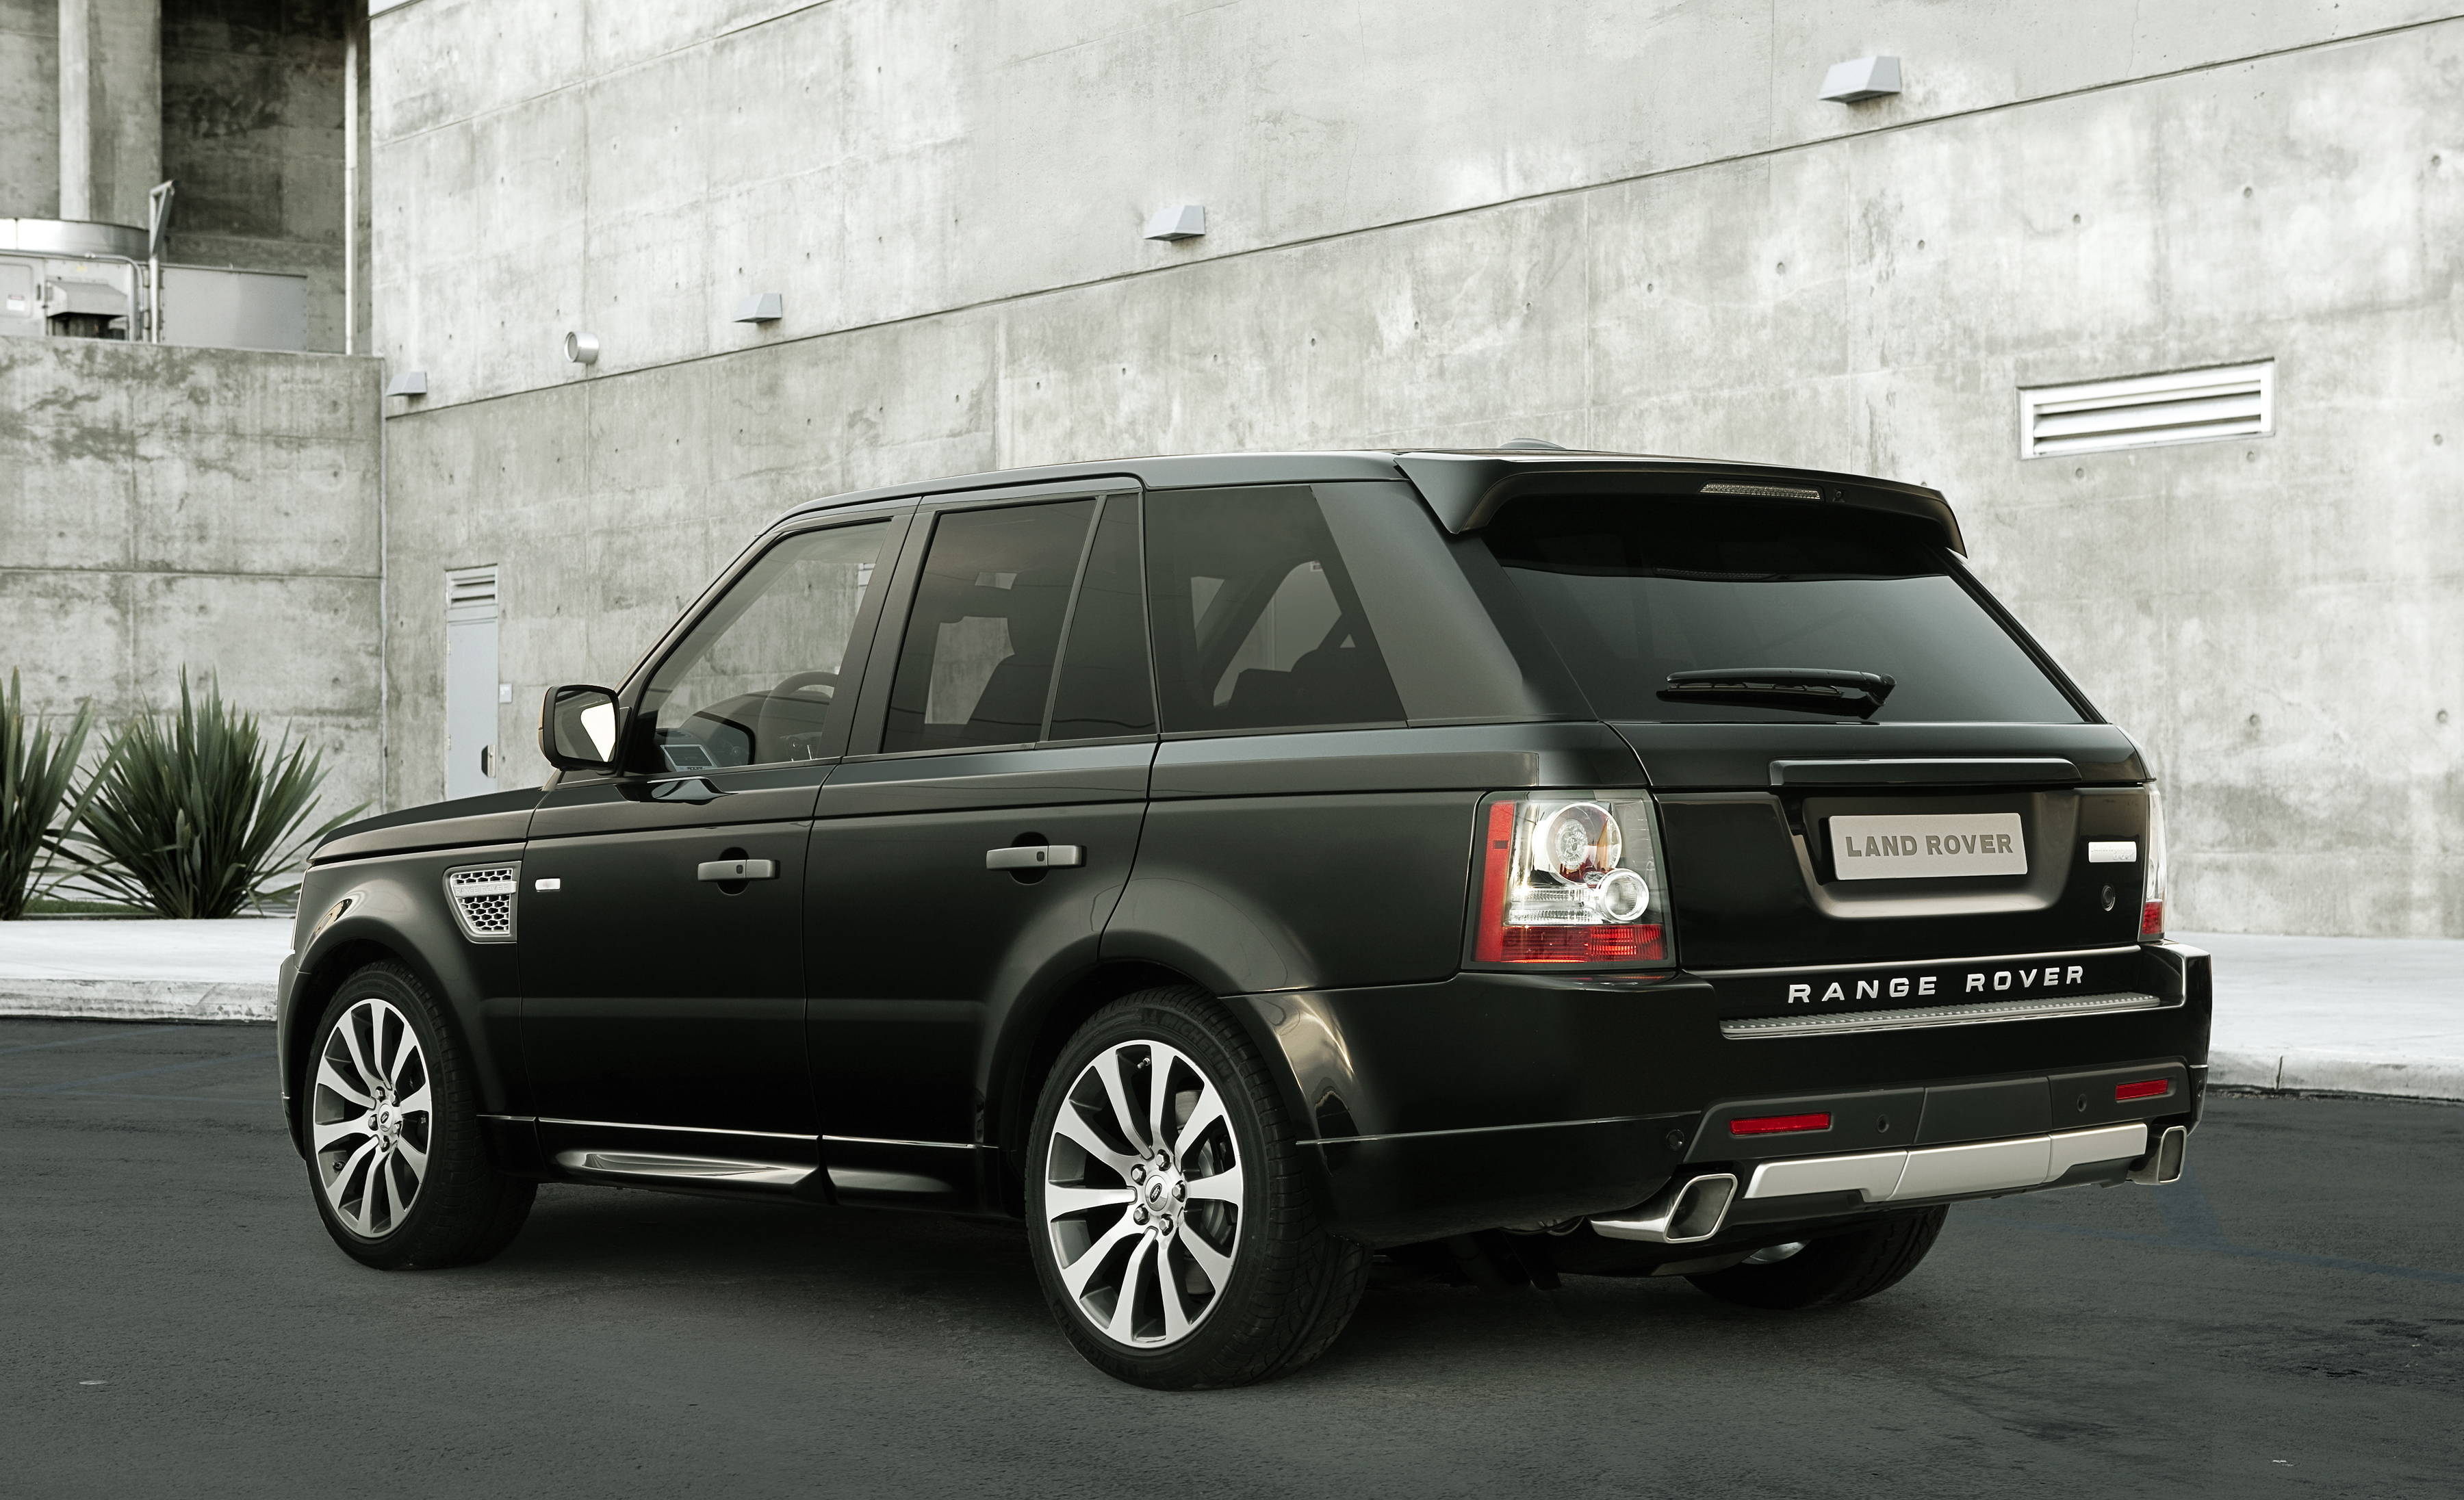 land rover range rover sport hse photos reviews news specs buy car. Black Bedroom Furniture Sets. Home Design Ideas